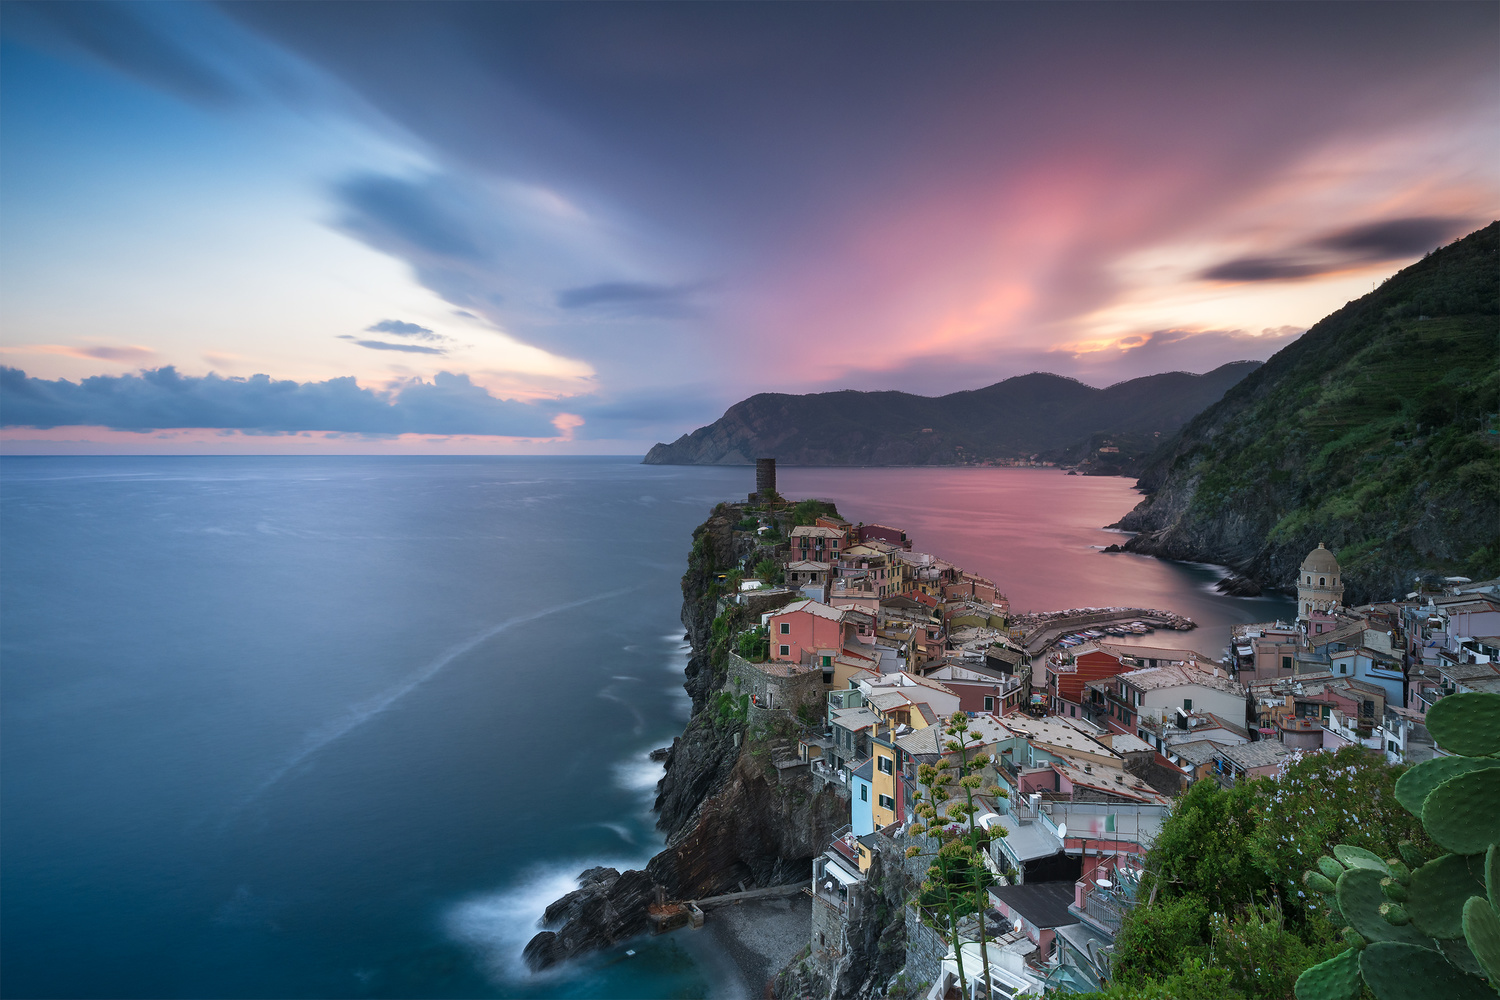 Sunset in Vernazza by Anton Galitch